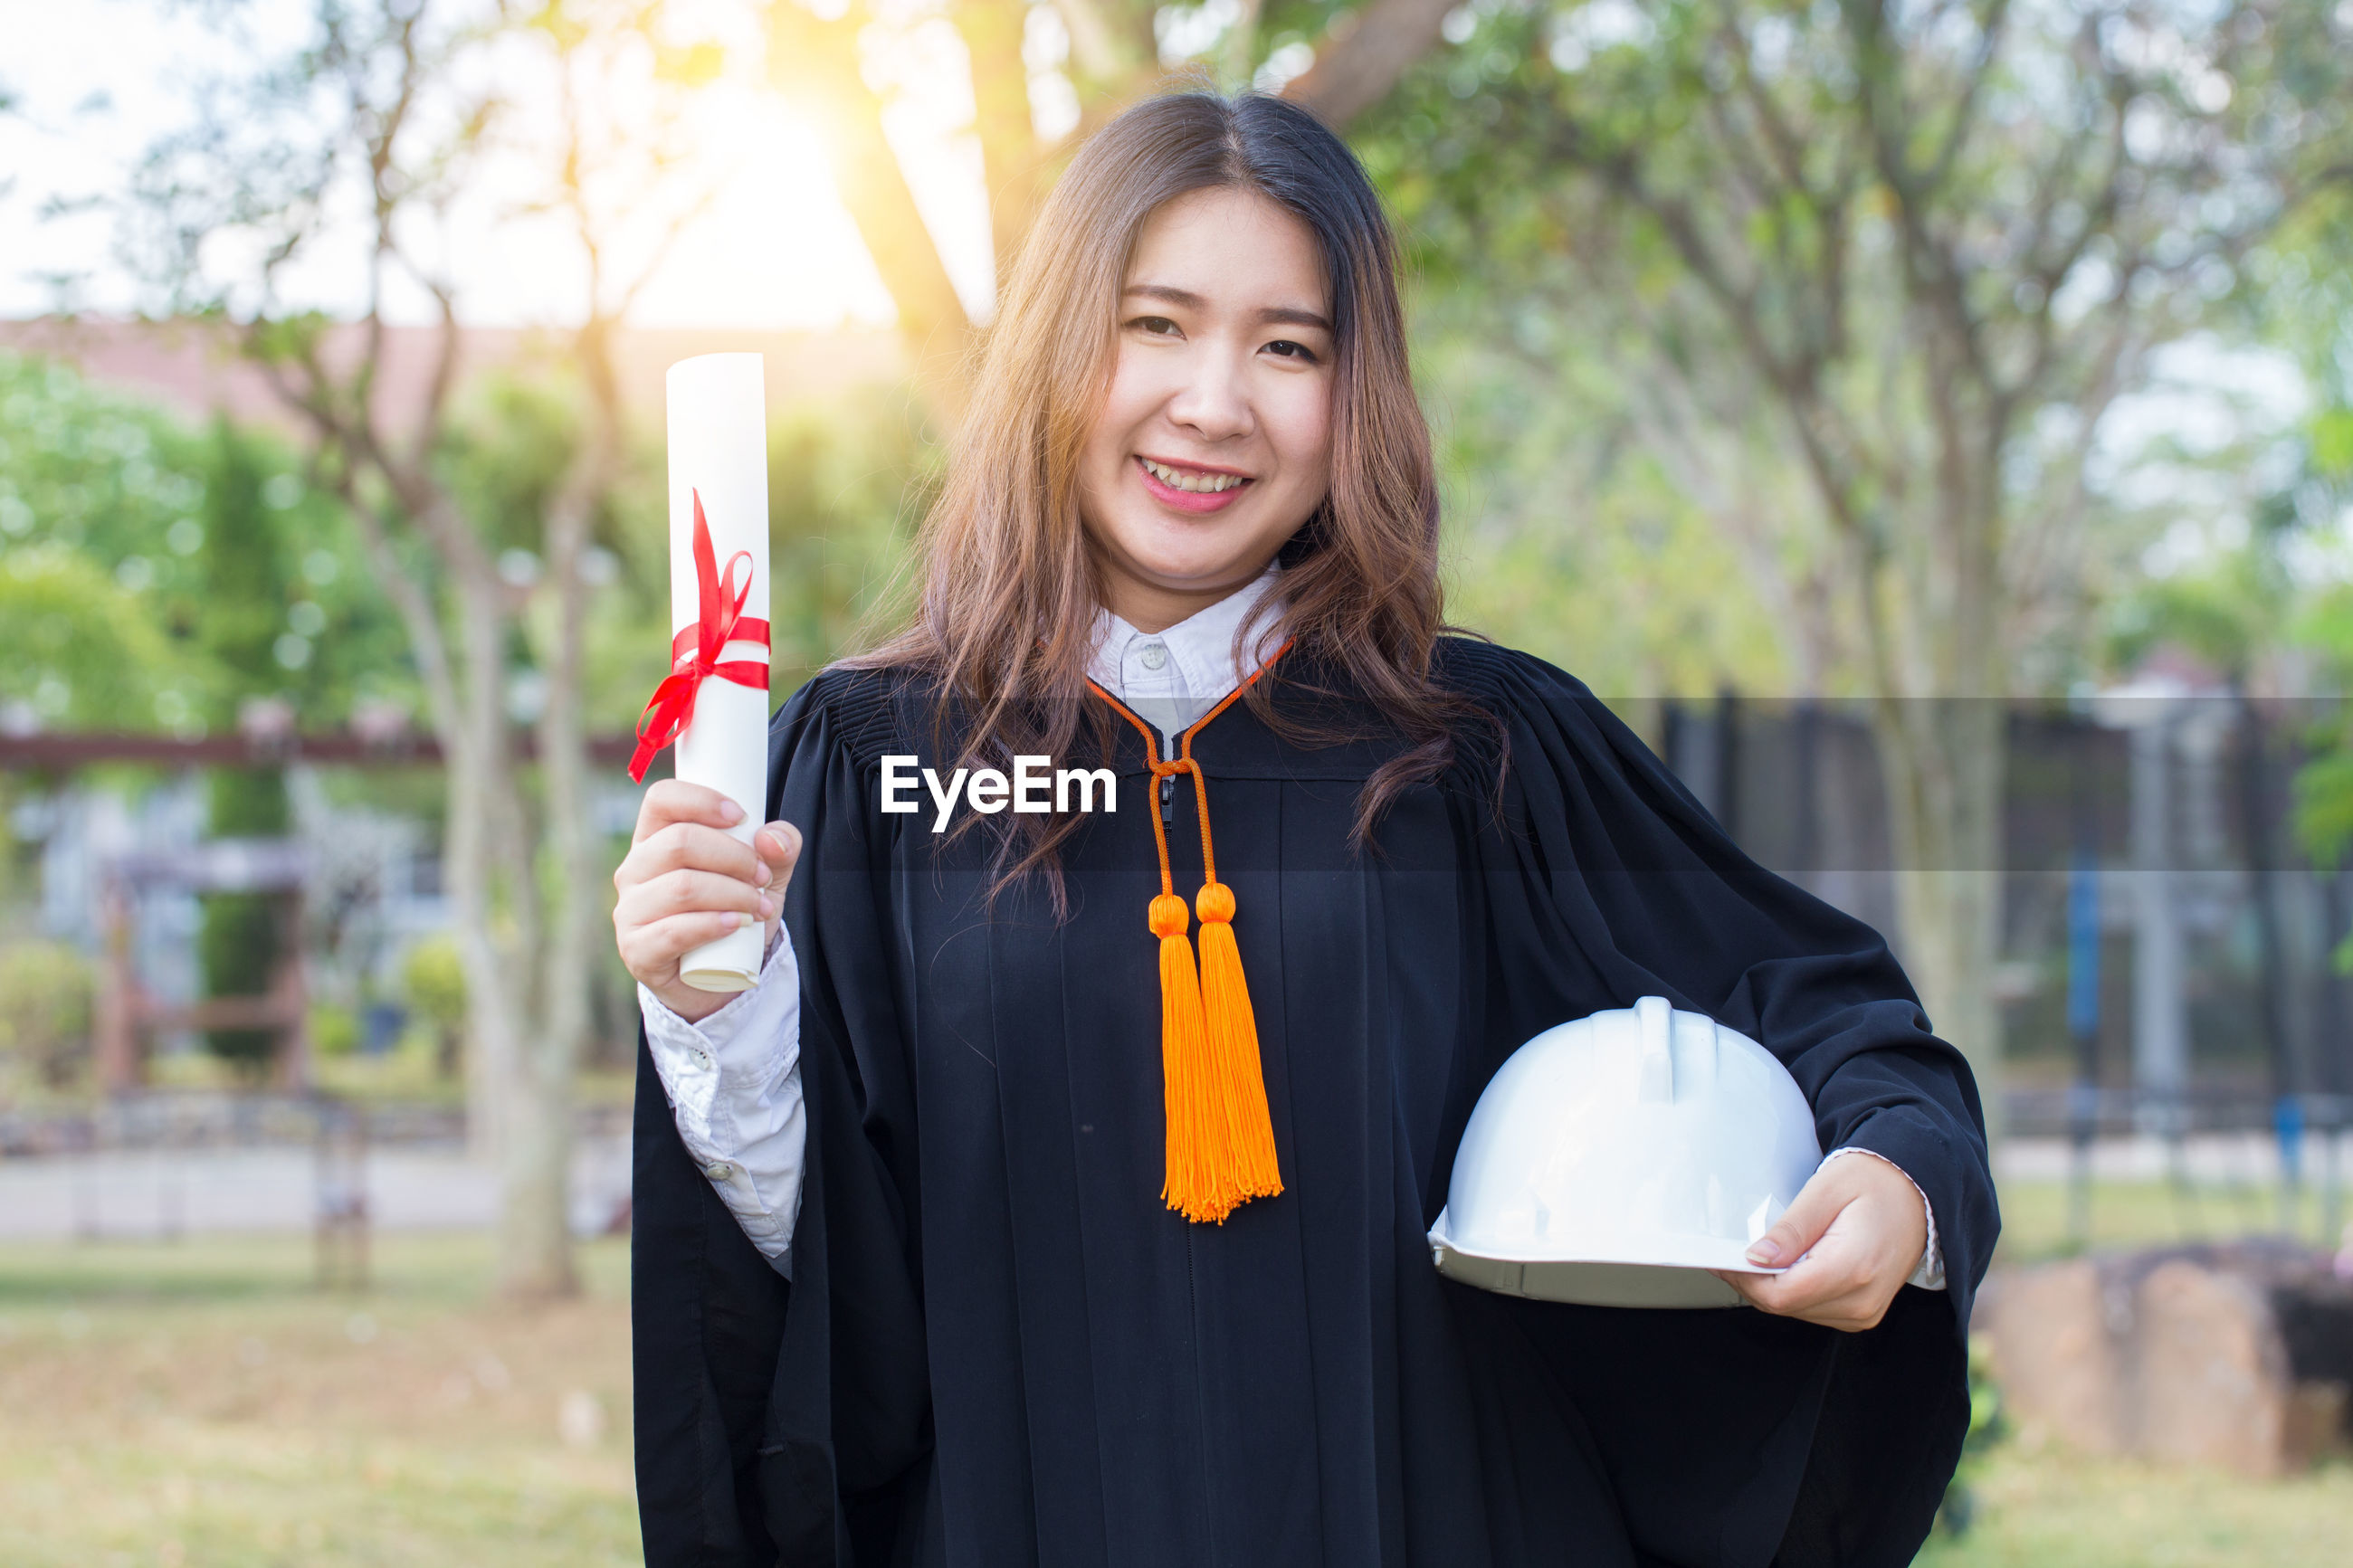 Portrait of smiling young woman wearing graduation gown while holding diploma and hardhat in park